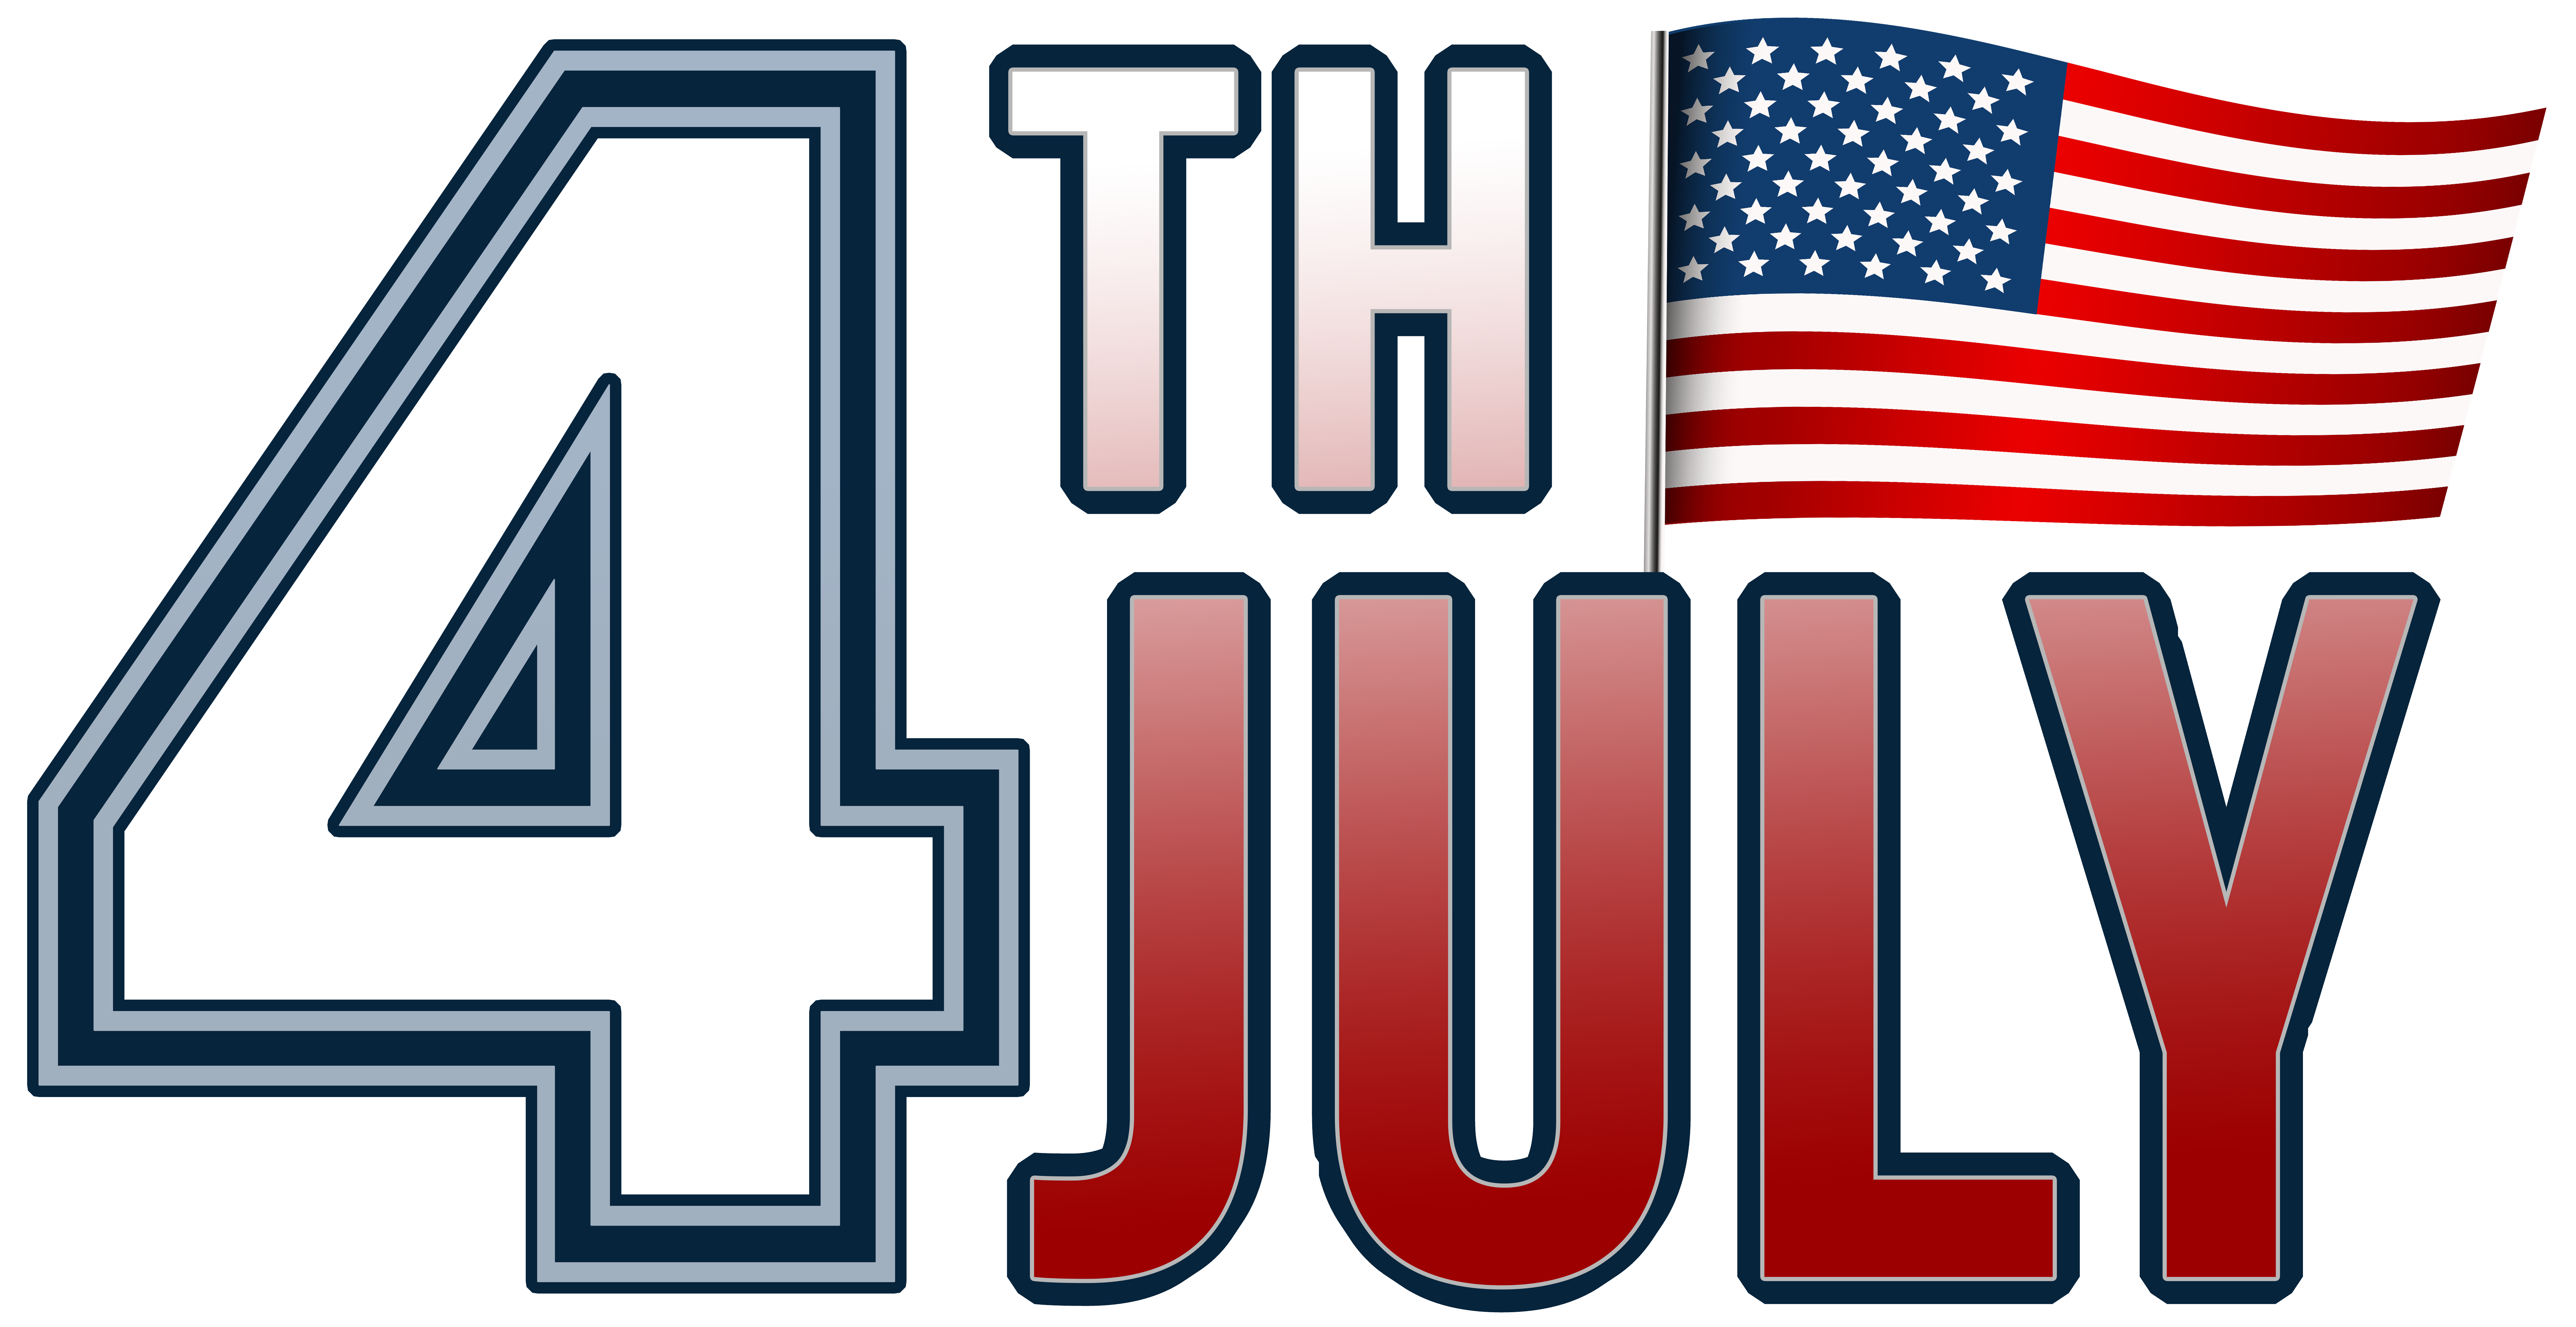 4th of july free clipart 400 x 150 graphic freeuse stock 4th Of July Clipart Transparent graphic freeuse stock